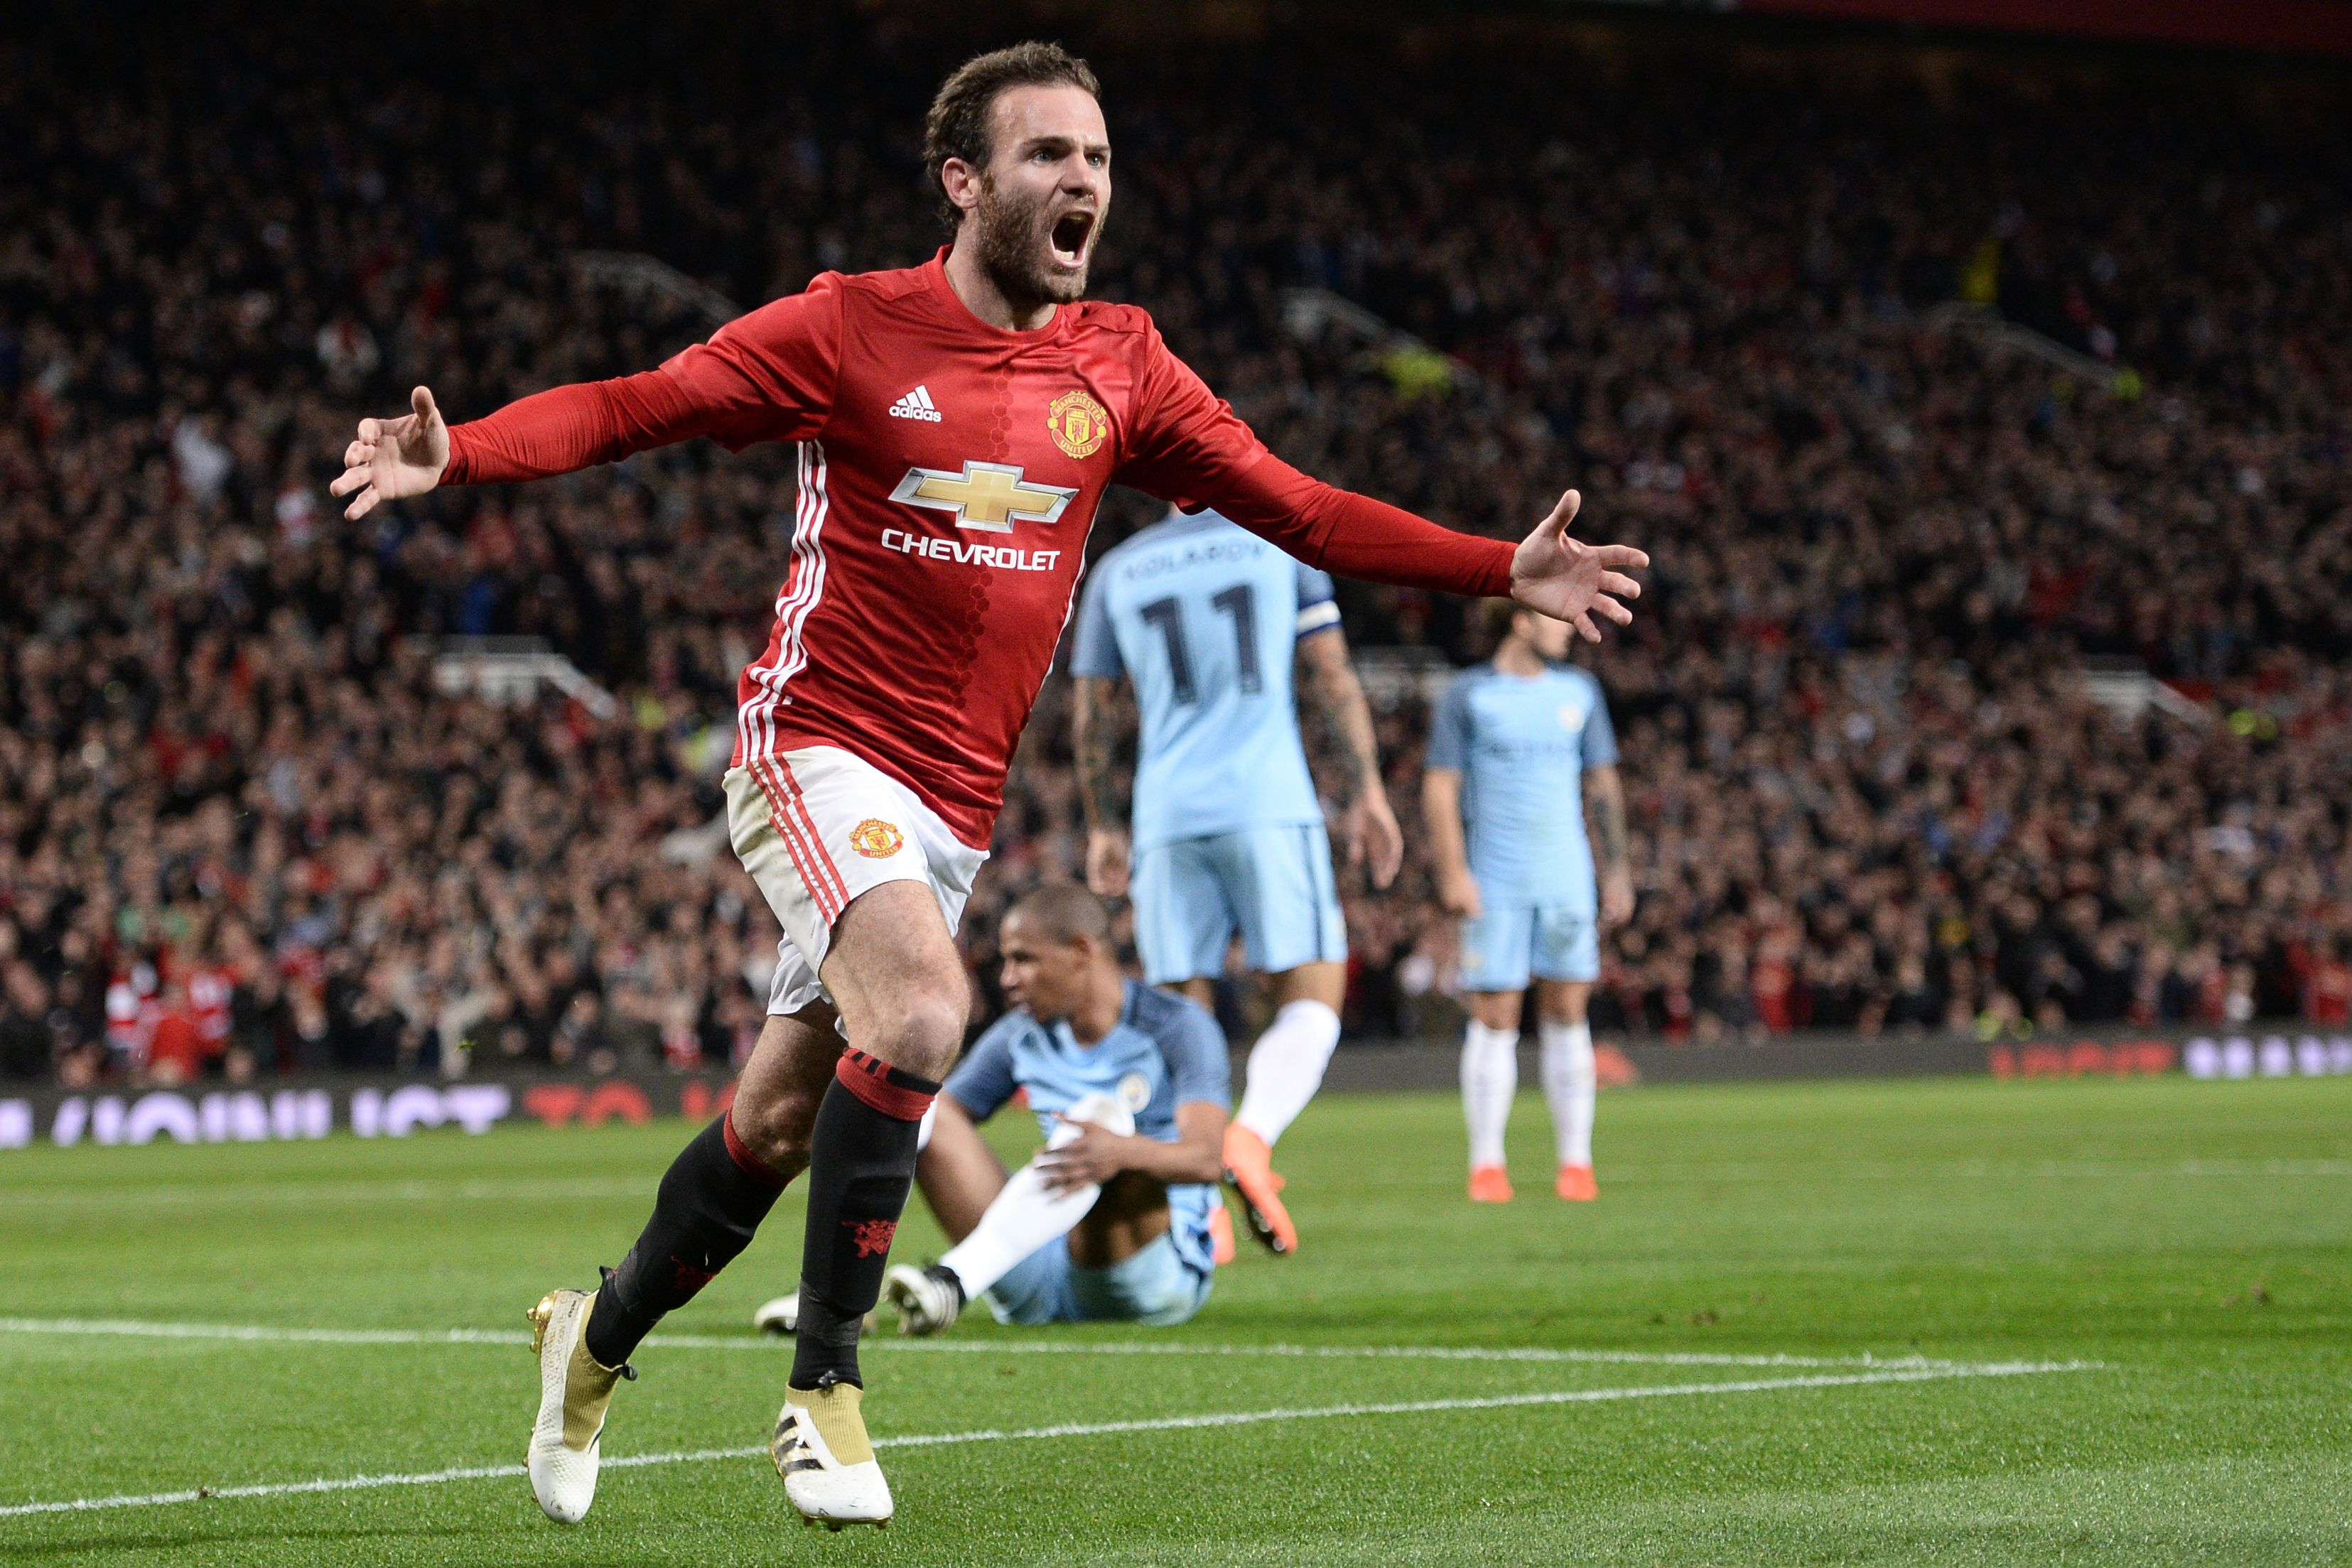 When is Manchester United v Burnley? Kick-off time, TV channel, radio, odds and head to head